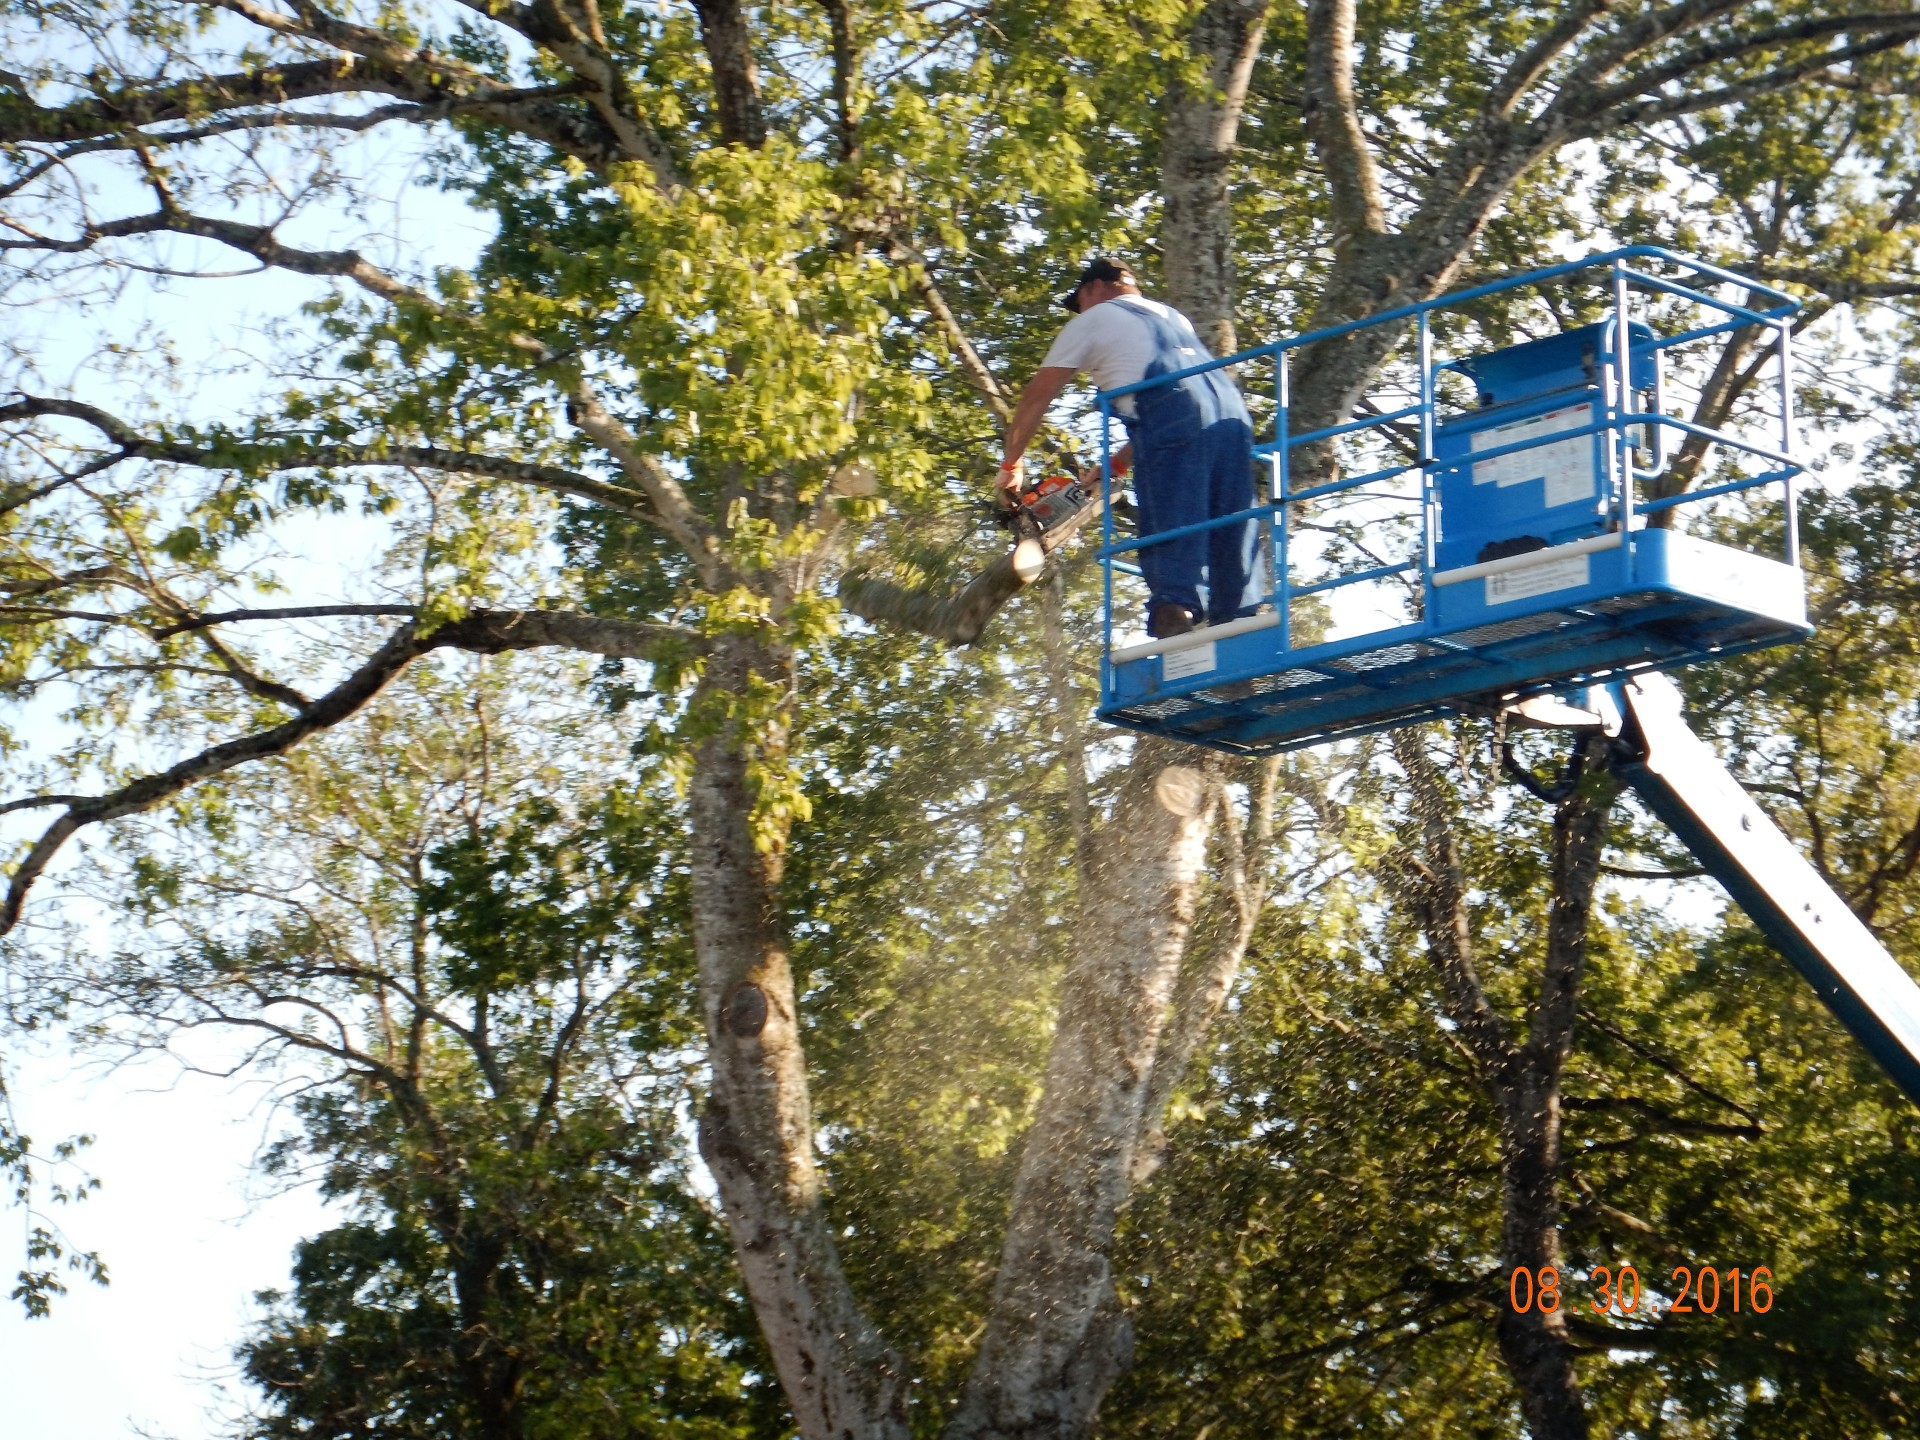 TREE REMOVAL, TREE TRIMMING, DMA TREE SERVICE